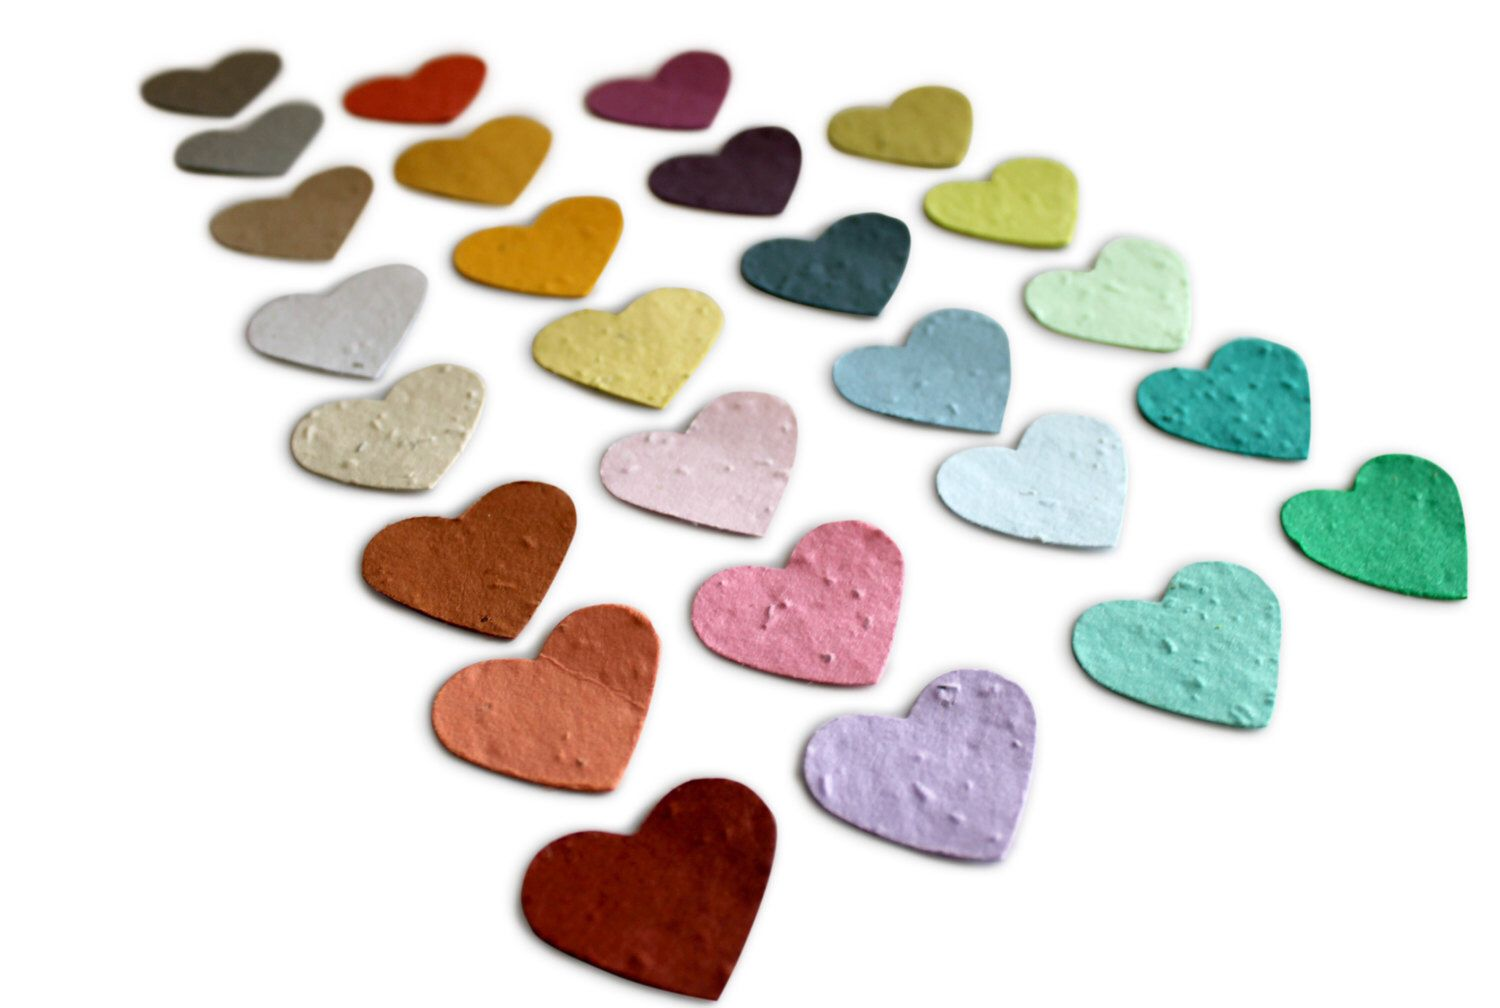 150 Heart Shaped Plantable Paper Seed Wedding Favors and Confetti ...